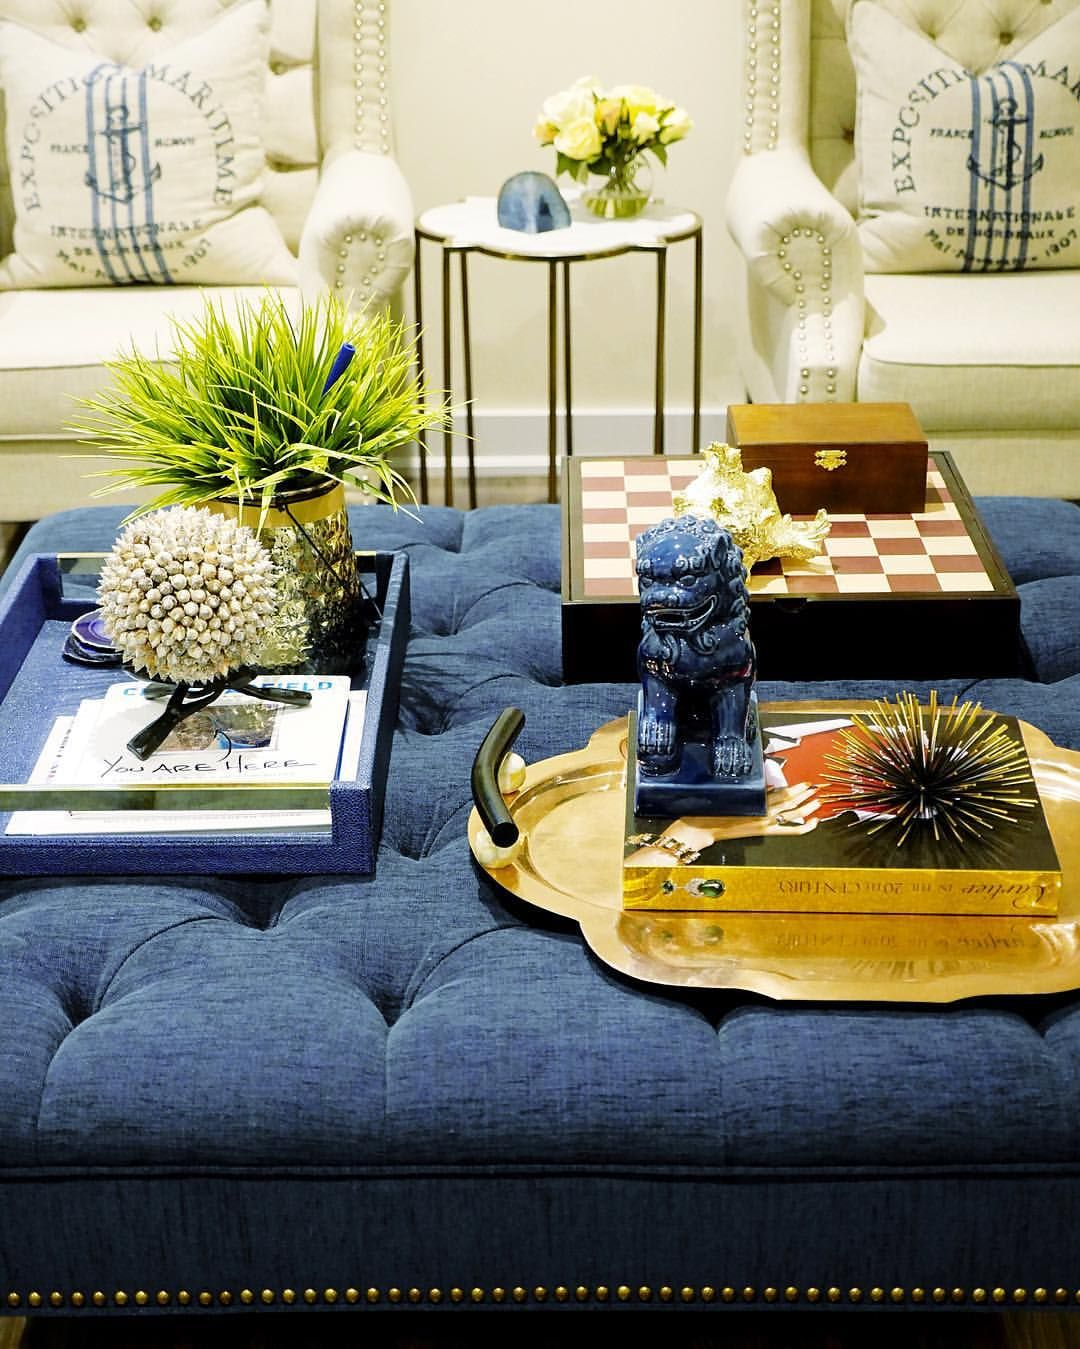 Family Room Decor Tufted Navy Ottoman Coffee Table Styling Classy Glam Living Ottoman Decor Ottoman Coffee Table Styling Family Room Decorating